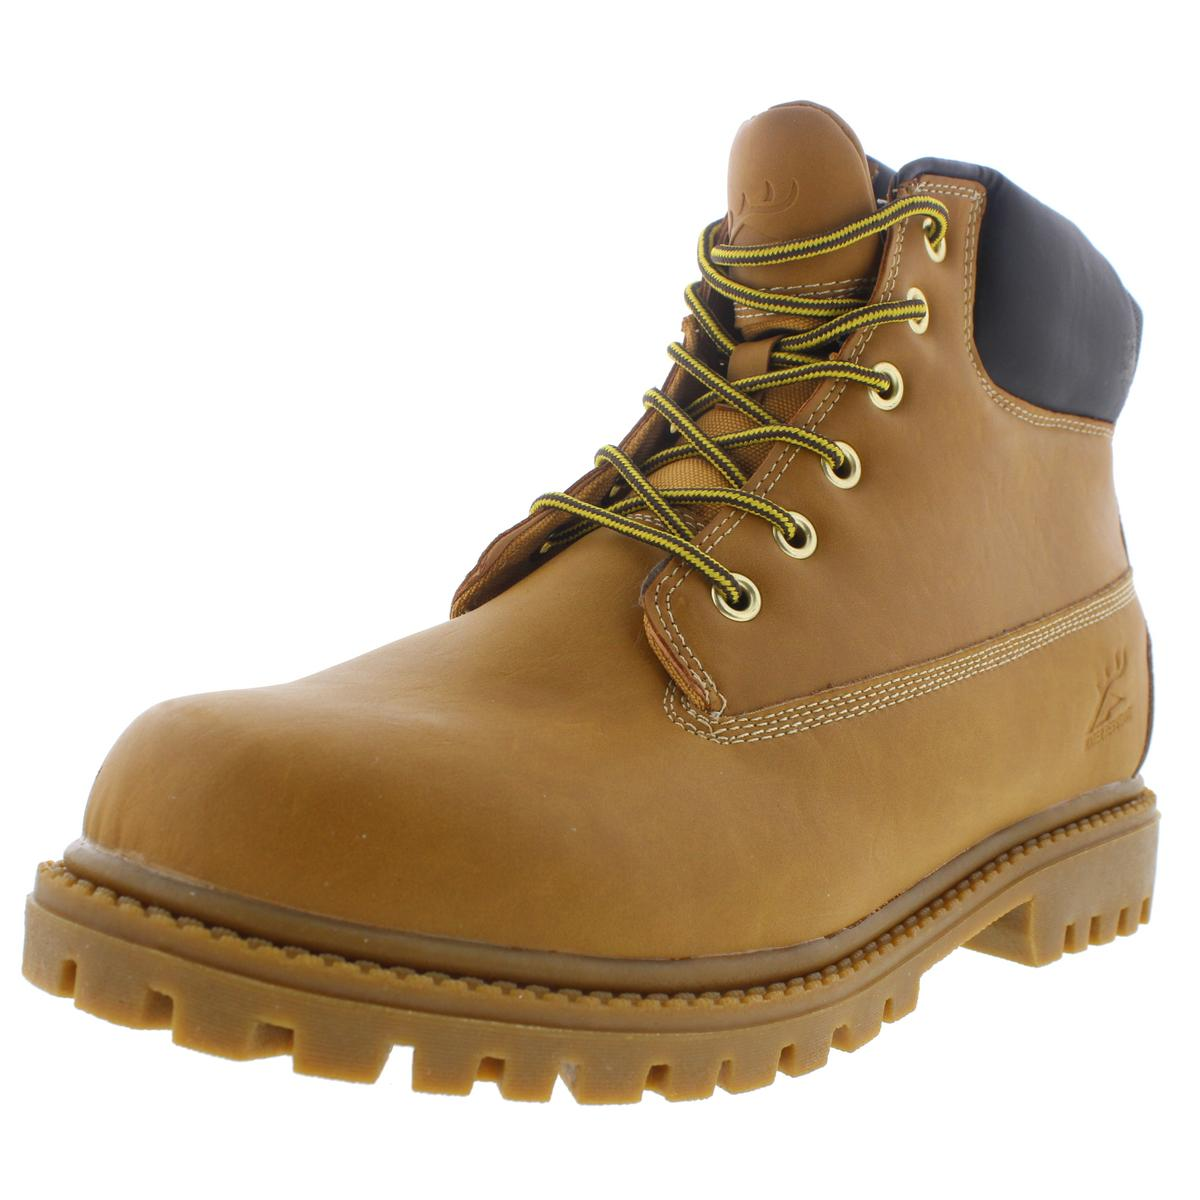 Deer Stags Mens Tractor Leather Water Resistant Work Boots by Deer Stags